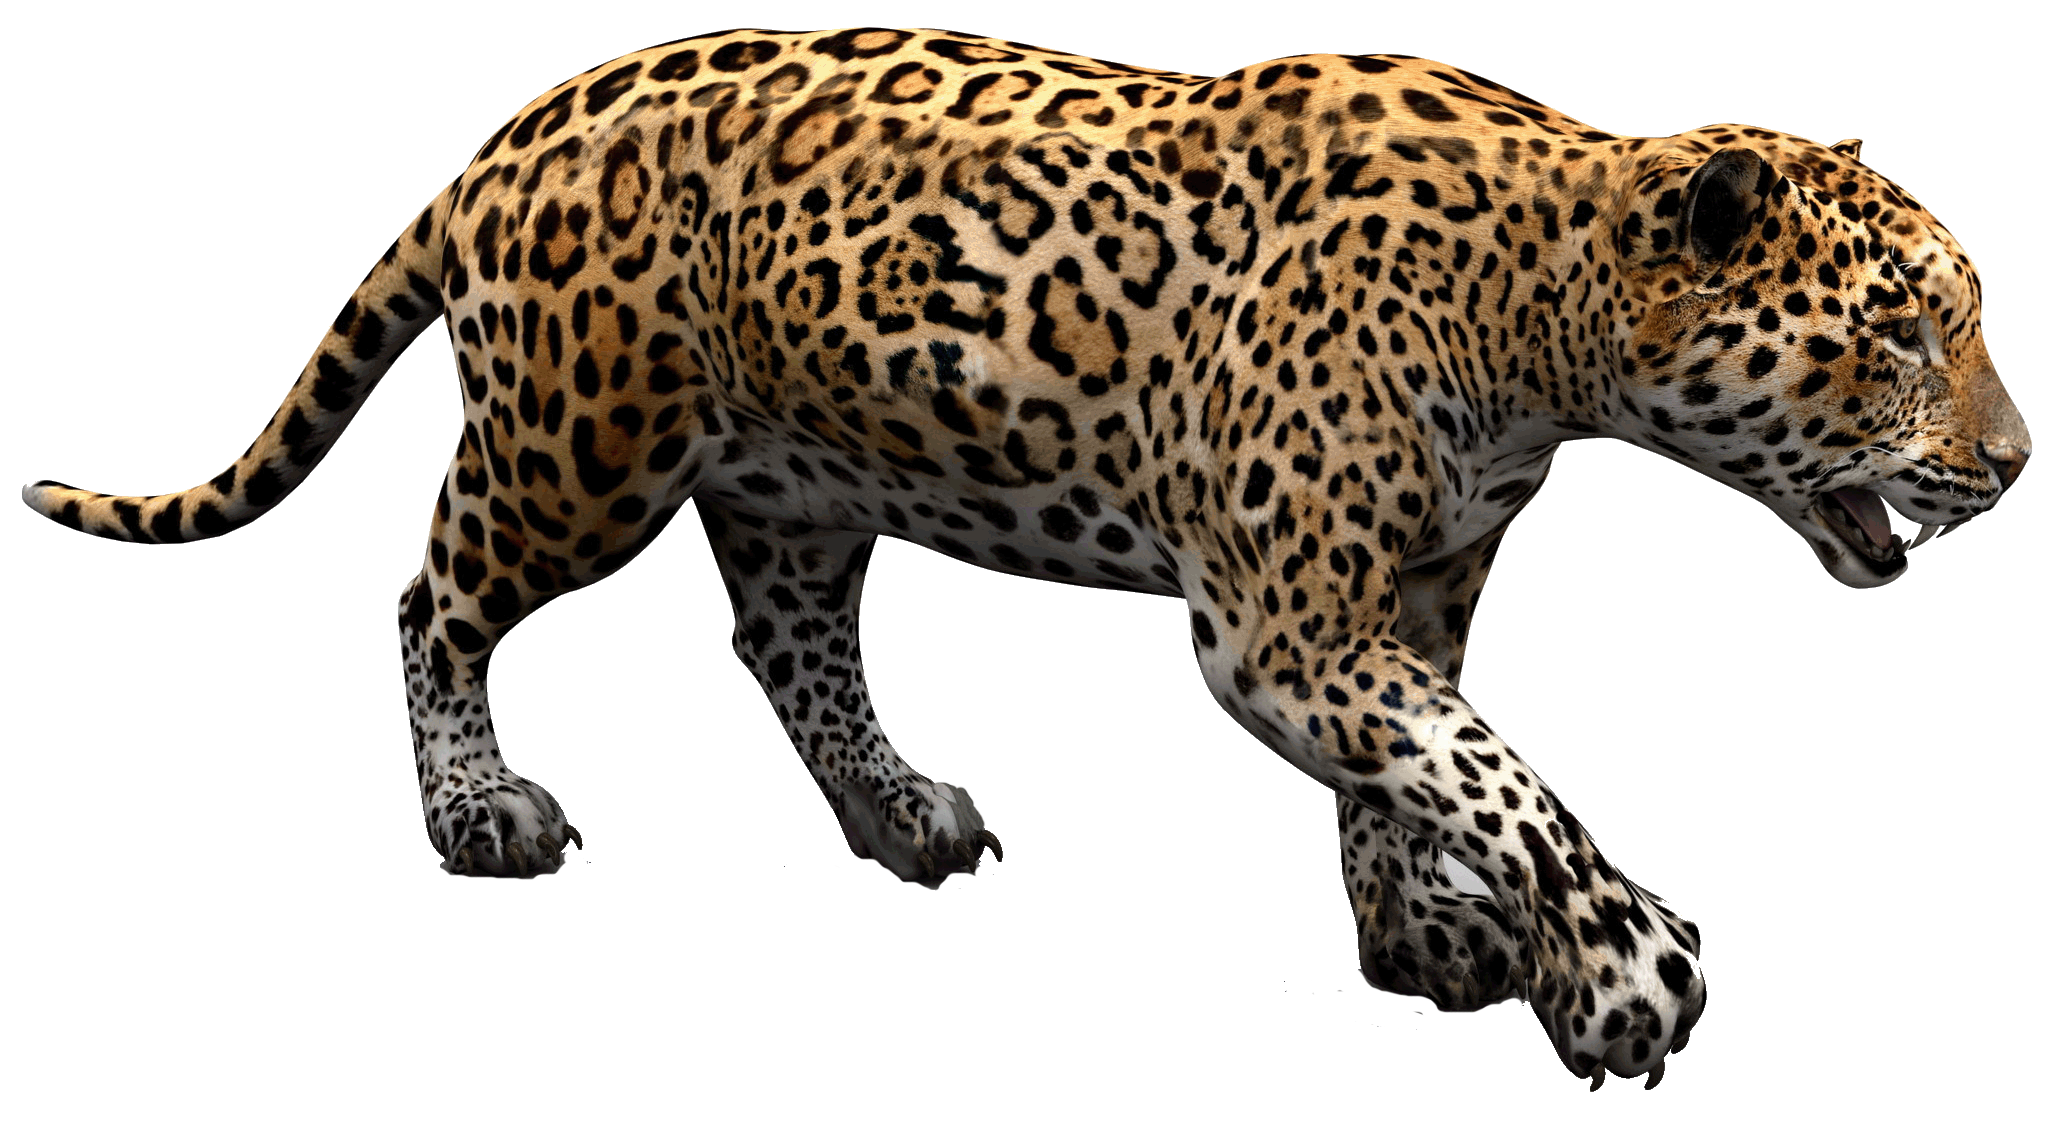 Png images free download. Jaguar clipart tropical animal